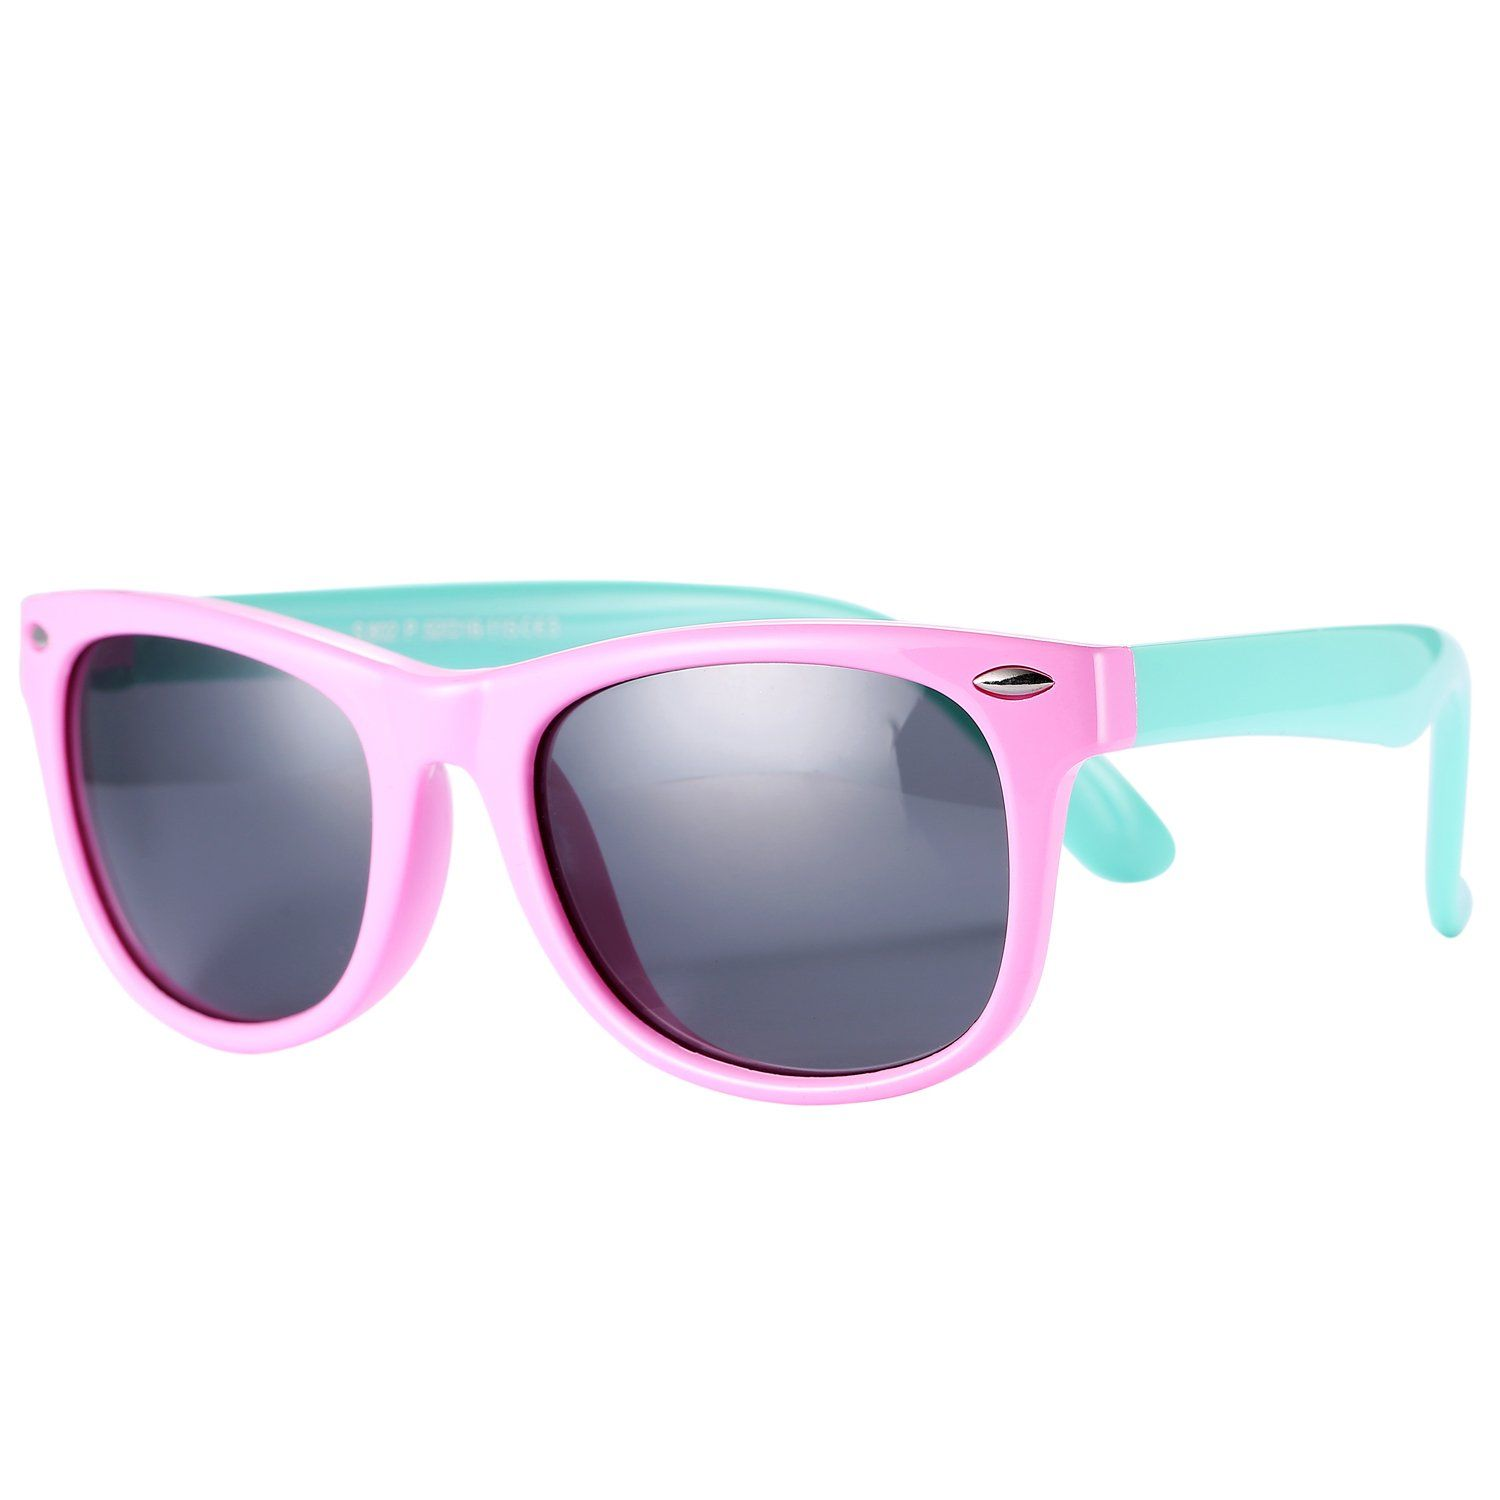 2cdc5f74486 Pro Acme TPEE Rubber Flexible Kids Polarized Wayfarer Sunglasses for Baby  and Children Age 3 -